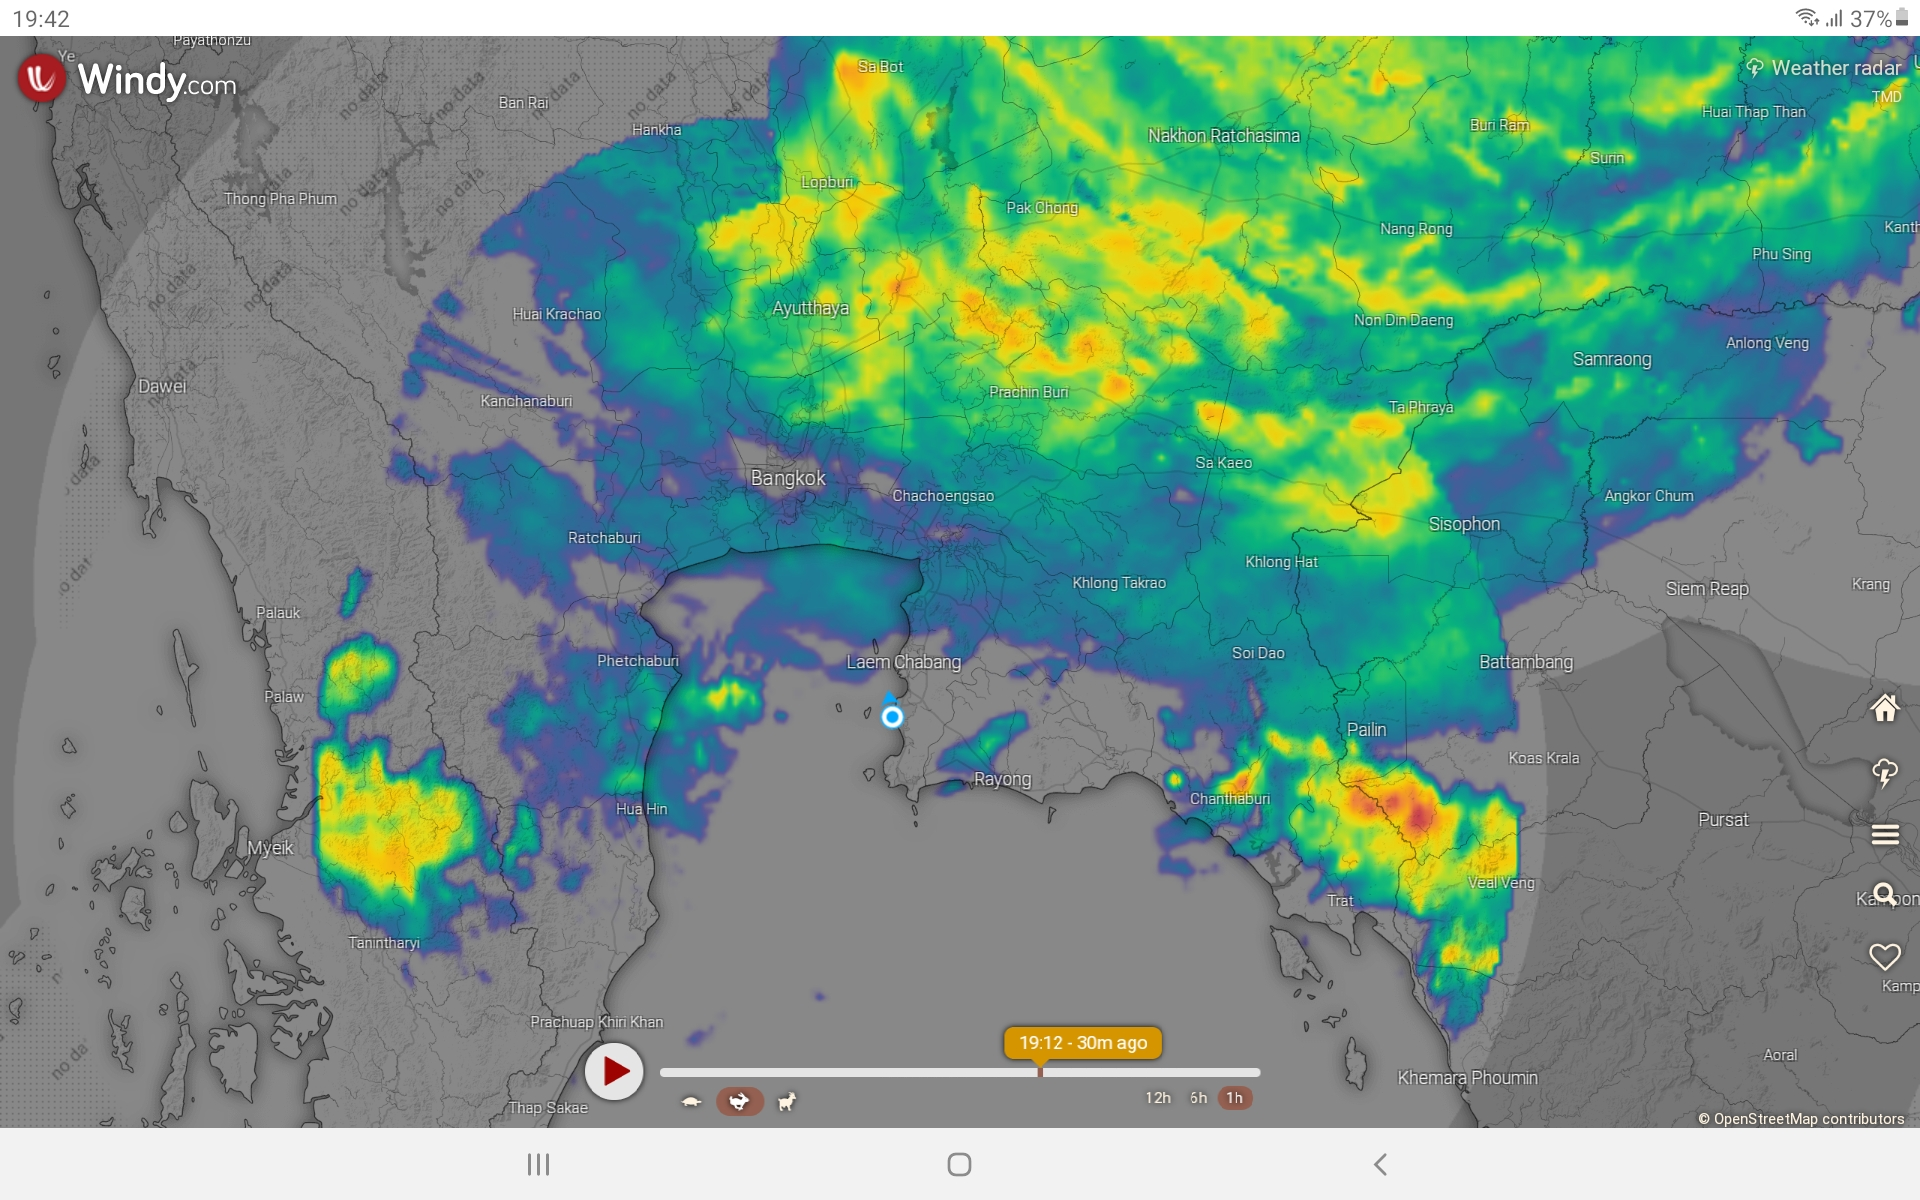 Tropical storm gathers speed, set to strike during weekend-screenshot_20200918-194252_chrome-jpg